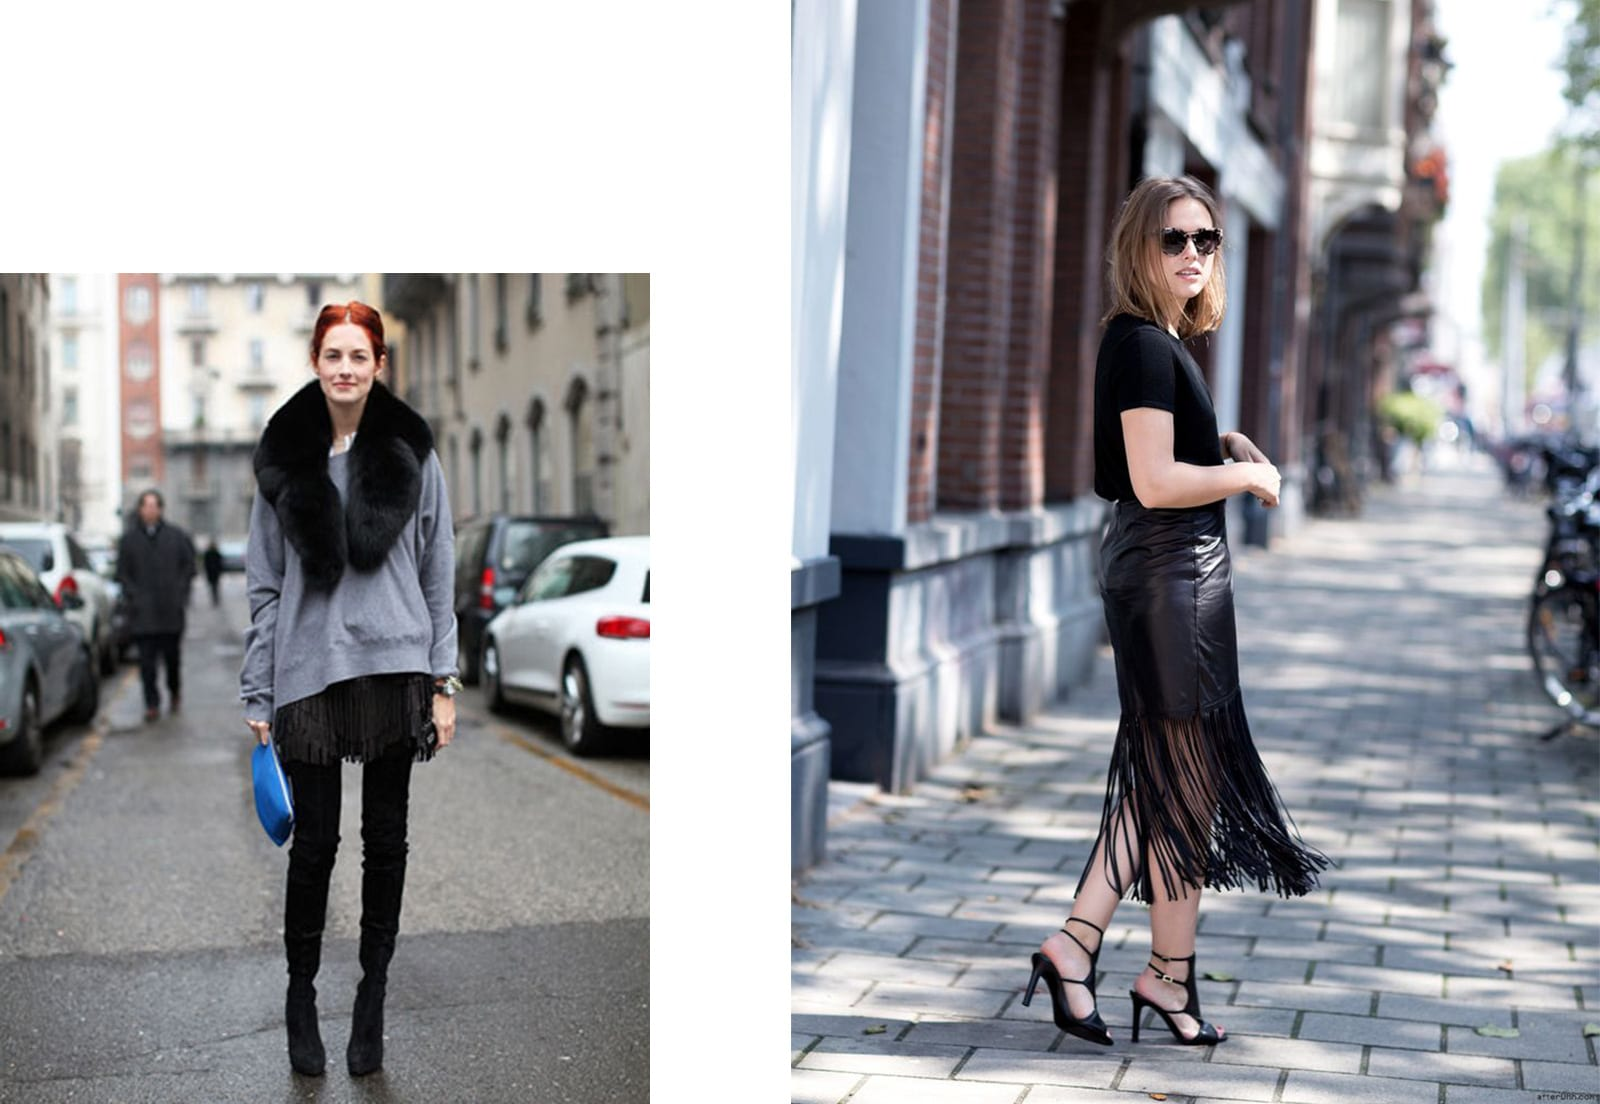 StyleANDMinimalism | Styling Inspiration | Leather Fringe Trend | Taylor Tomasi Hill | Sabrina Meijer wearing t-Shirt, skirt and shoes from Tamara Mellon